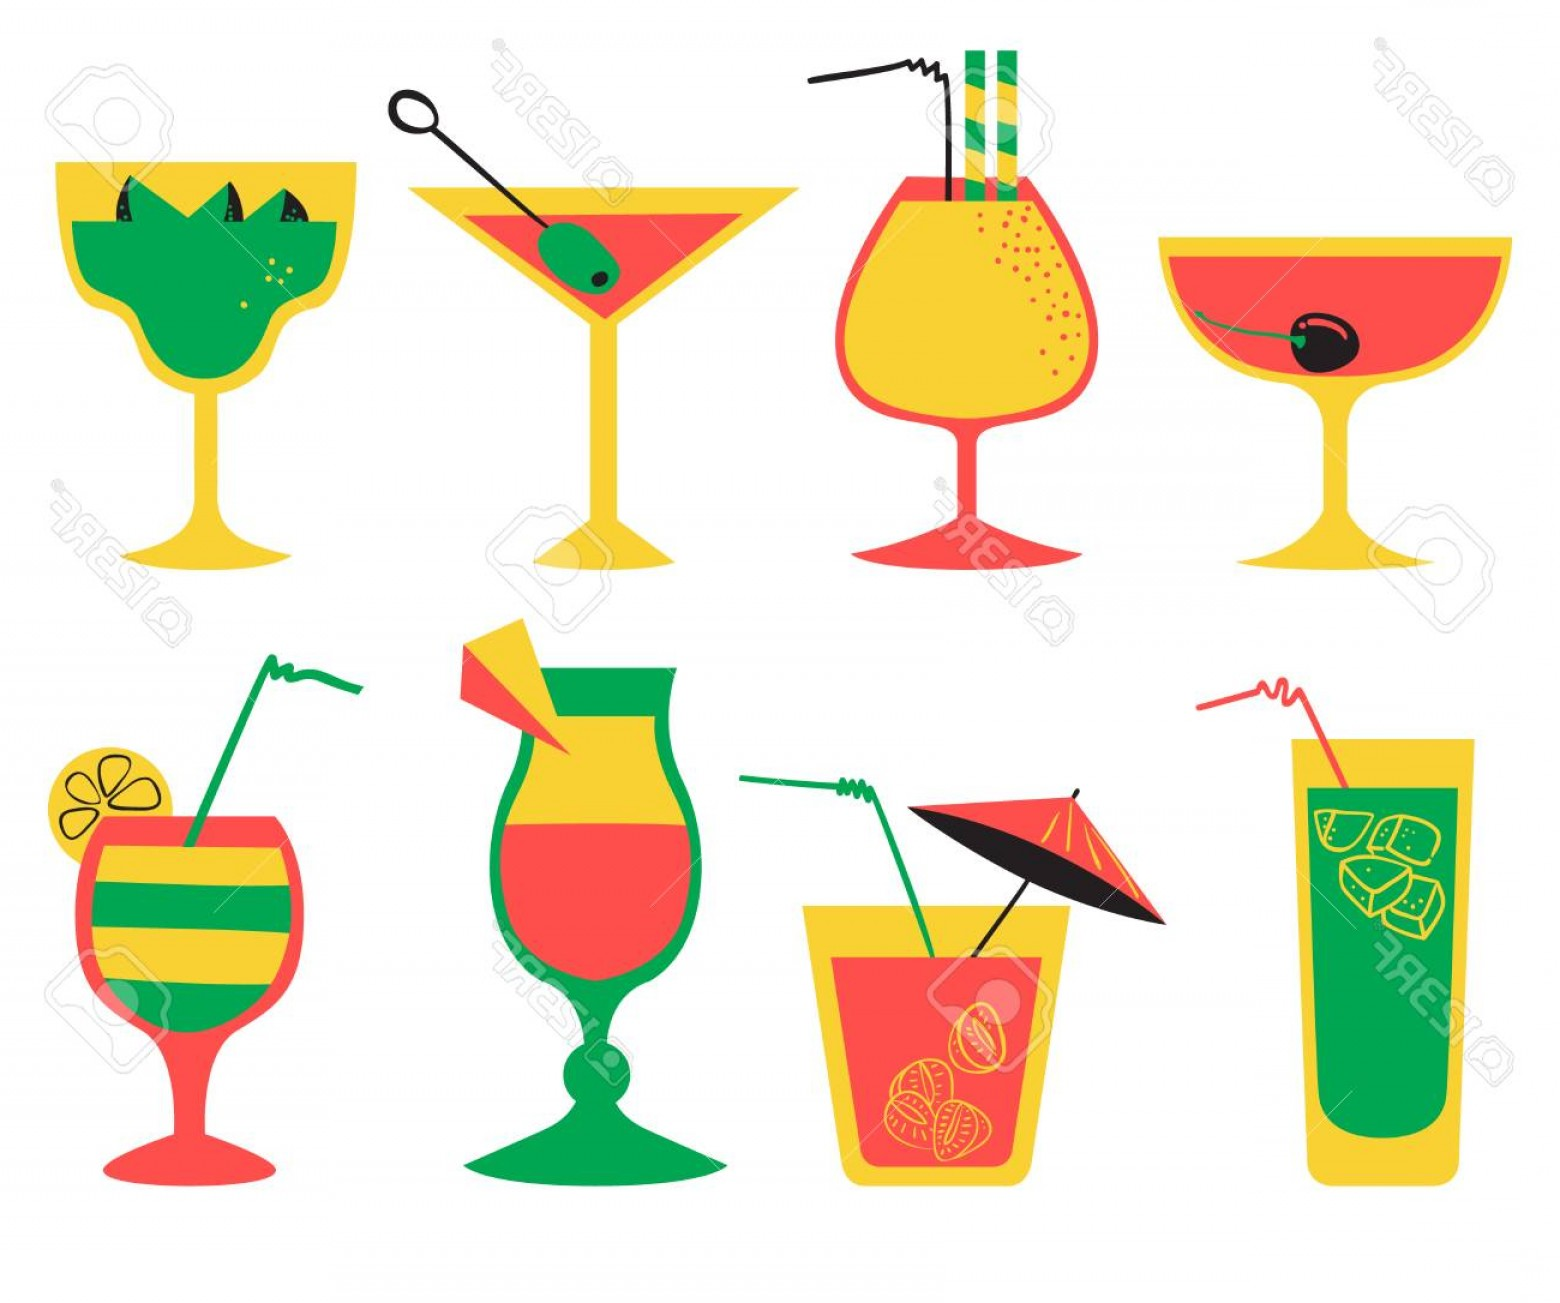 Cocktail Glasses Vector Art Decor: Photostock Vector Vector Set With Alcohol Cocktails Flat Cartoon Style Collection With Drinks Juice And Decorations In